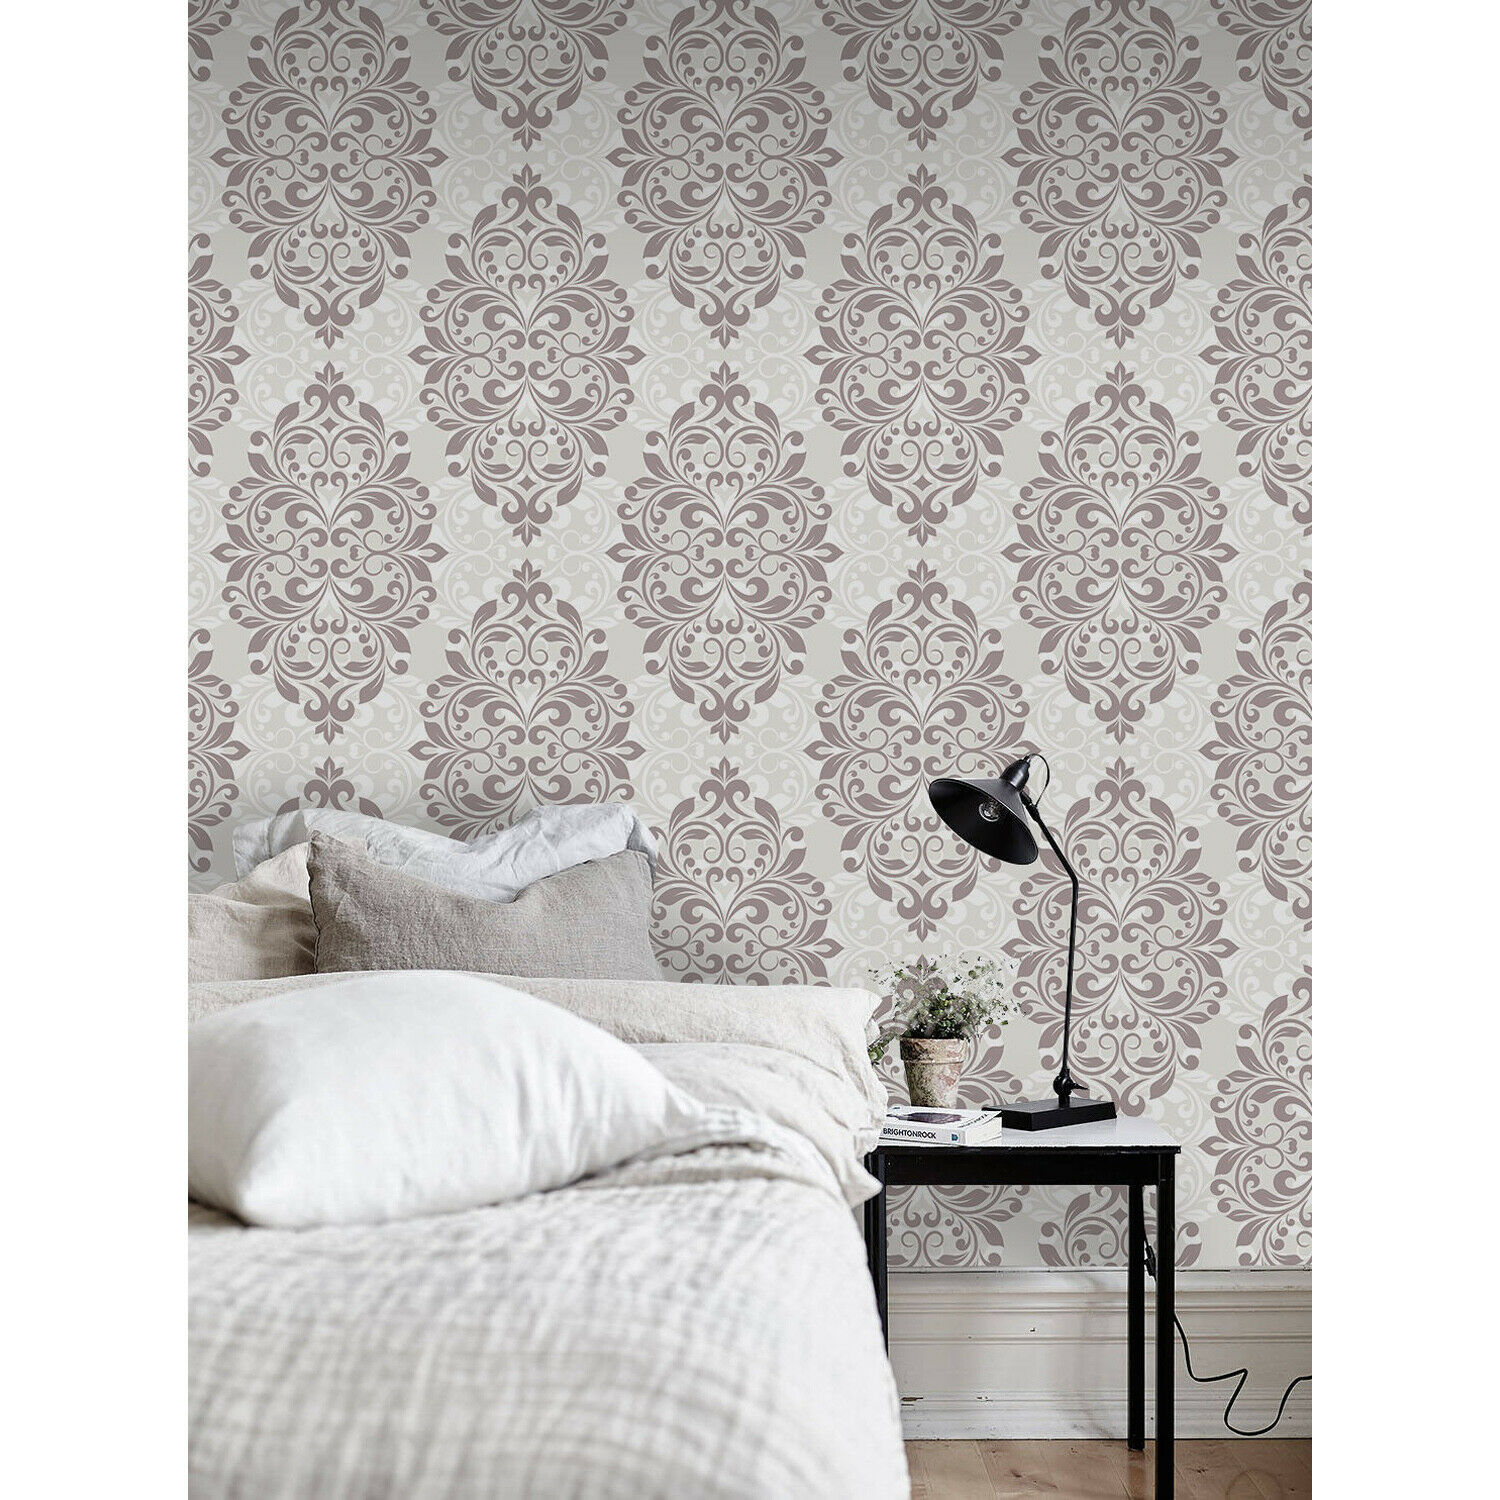 Damask Design Removable Wallpaper Brown And White Wall Mural